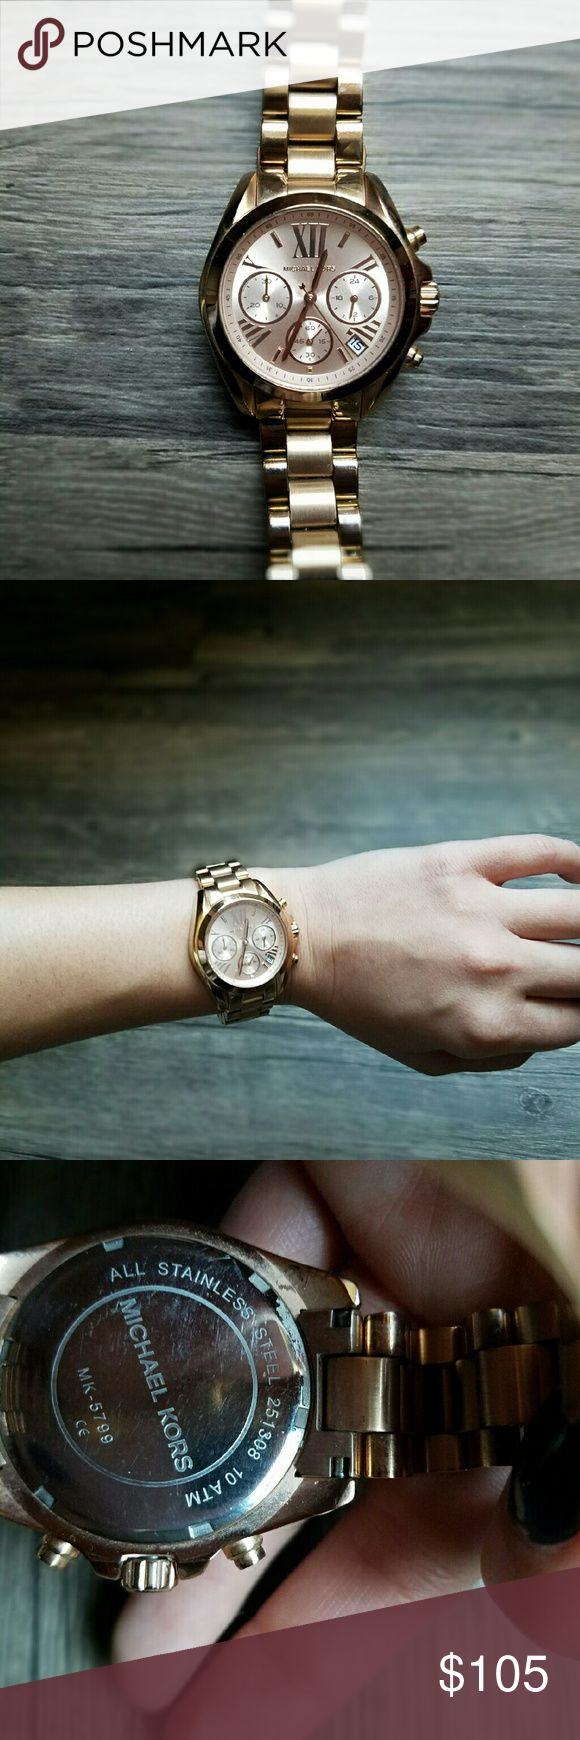 Micheal Kors rose gold women's watch A beautiful classic Michael Kors large face watch in a rose gold color that compliments all skin tones. This watch does require a new battery. There is light wear on the banding (Please see last picture) but there is none on the face of the watch. Great as a holiday gift for you or your loved ones! Offers welcome! Michael Kors Accessories Watches